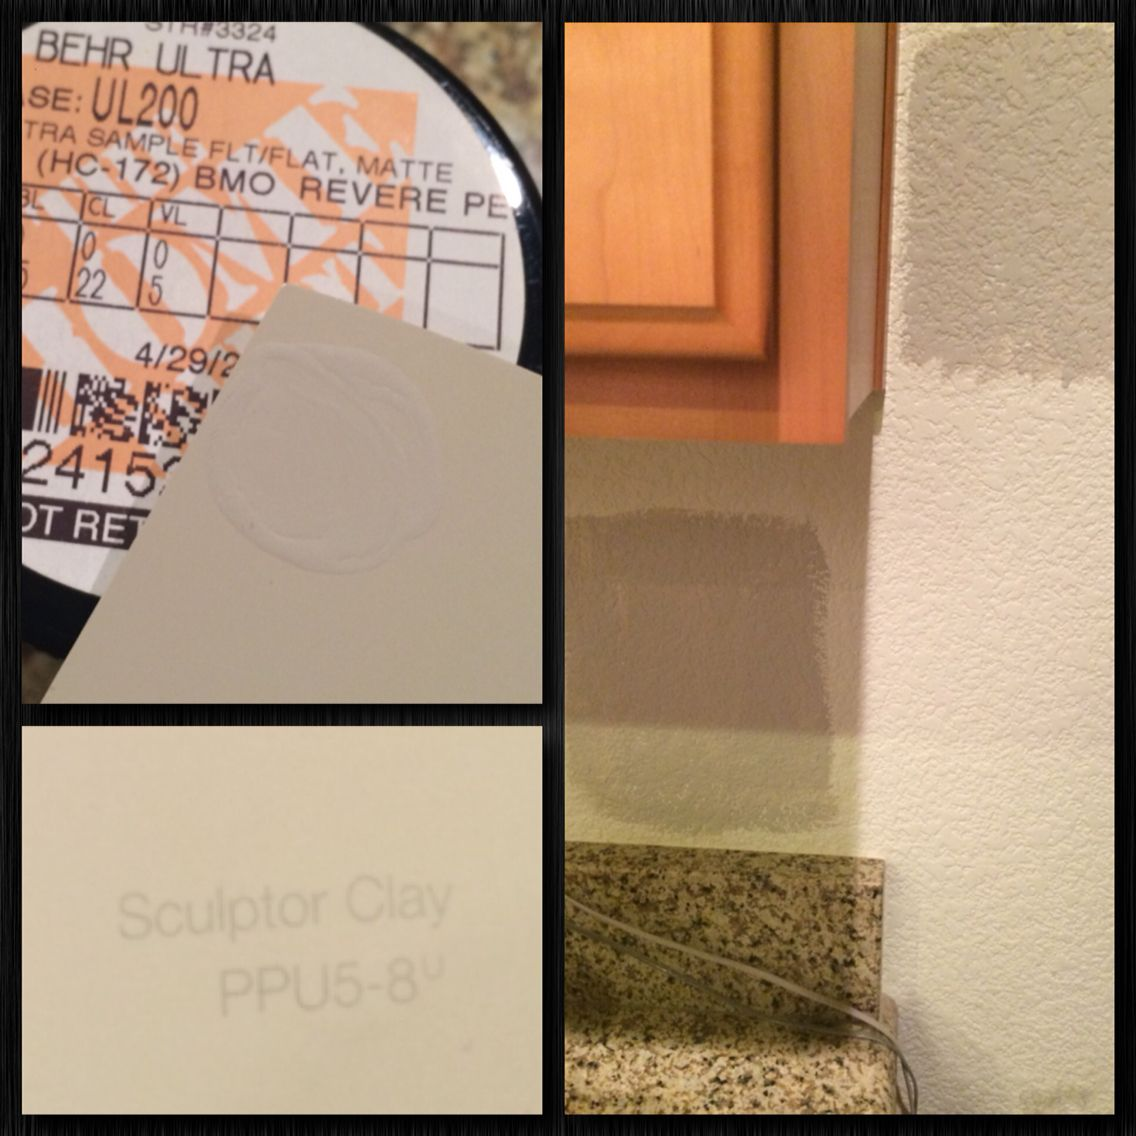 Accent Wall Colors Sculptor Clay: Sculptor Clay By Behr Is A Perfect Swap For Revere Pewter